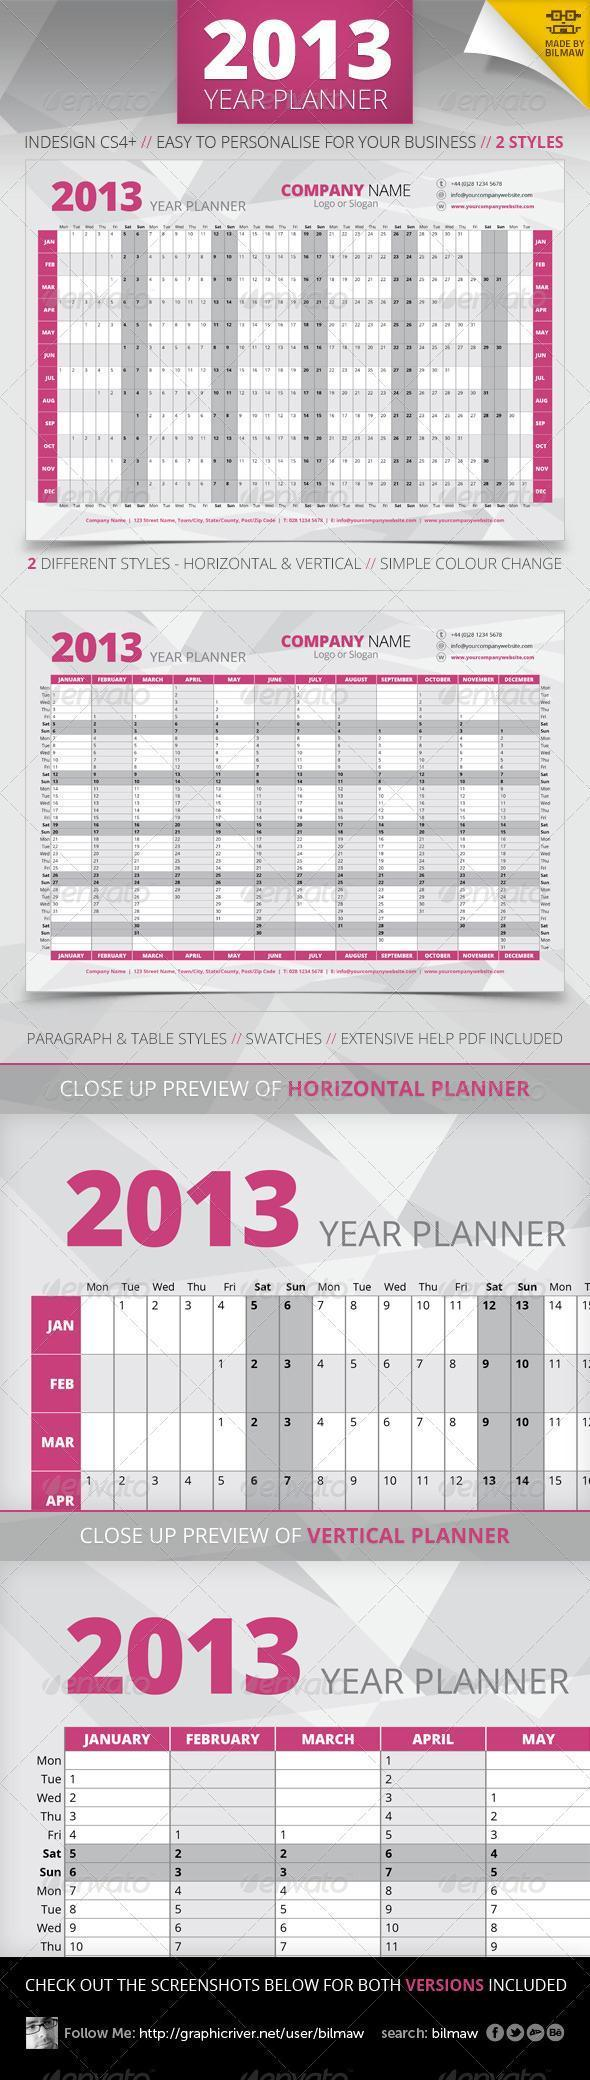 2013 Year Planner and Calendar